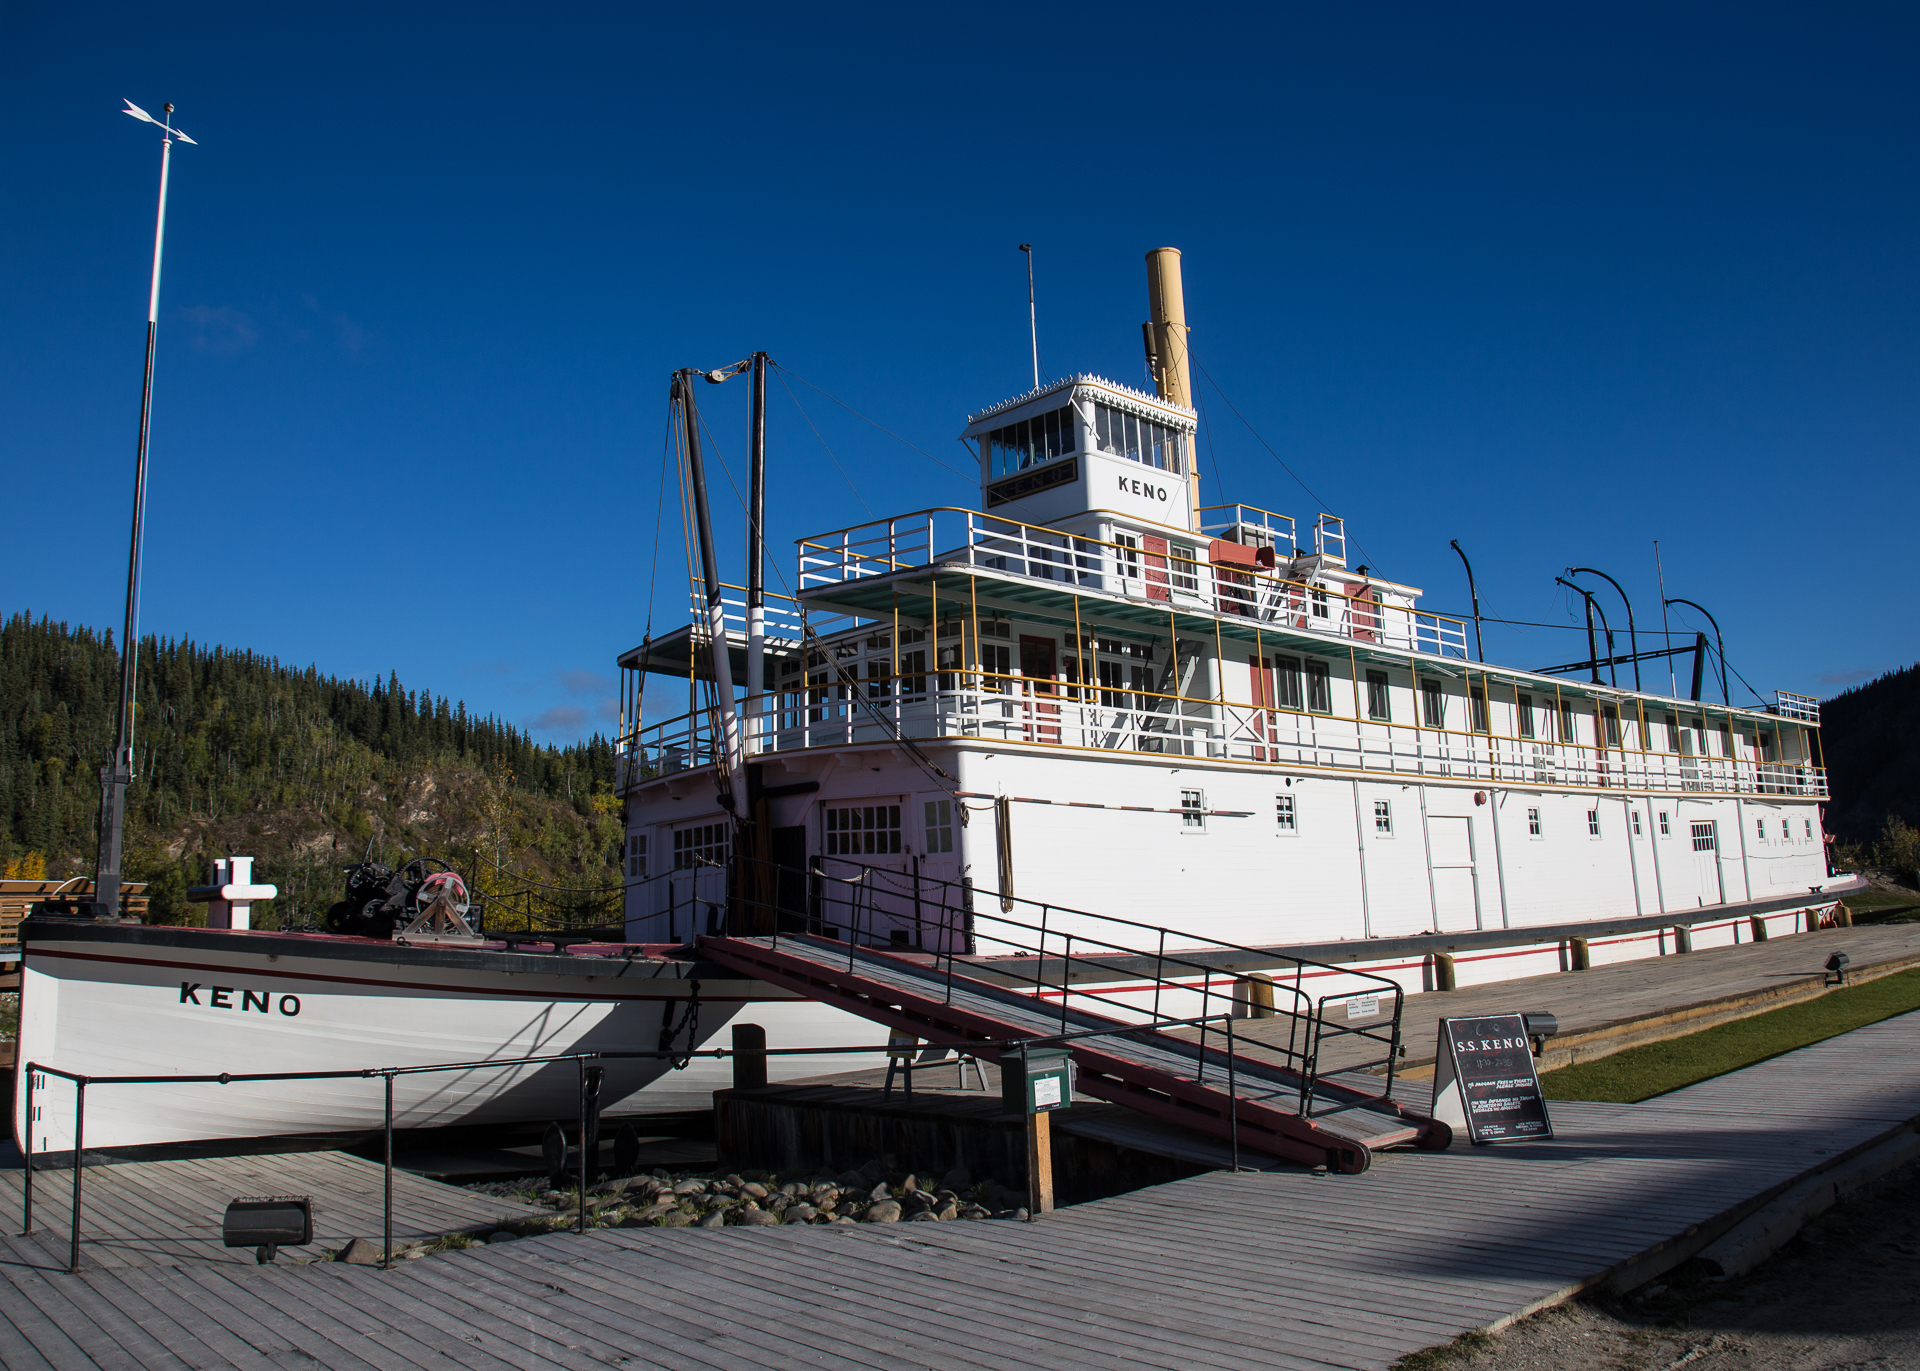 The Keno, one of the original paddlewheelers that worked the Yukon River in the gold rush days.